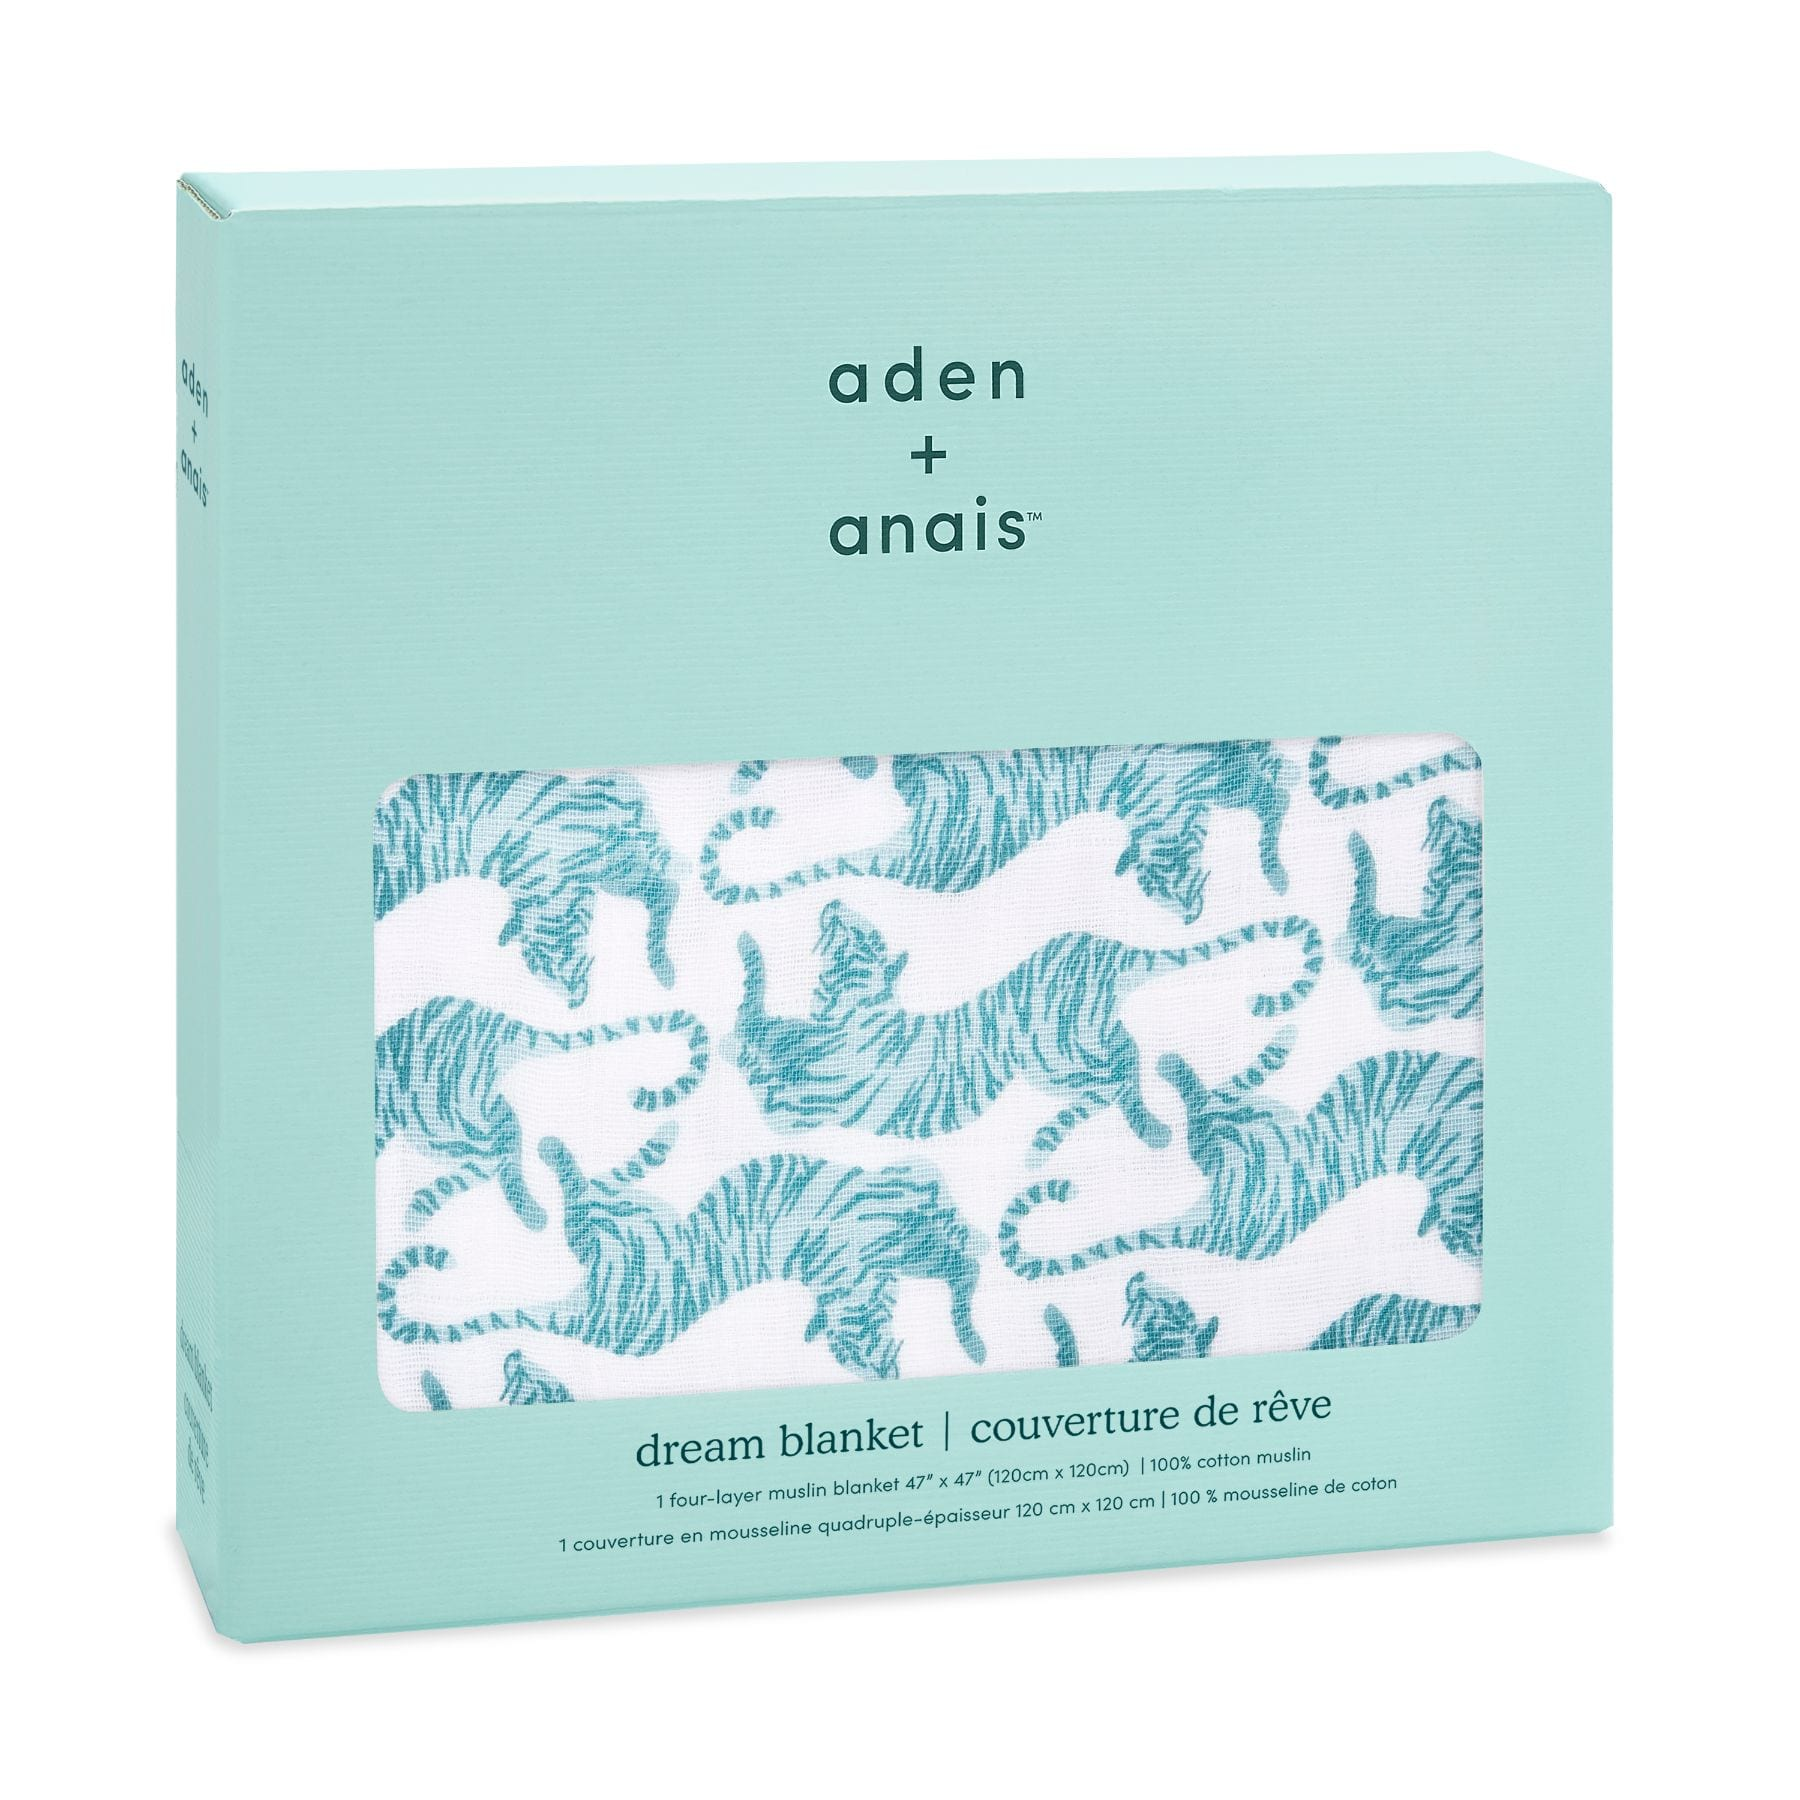 Aden & Anais Classic Dream Blanket - Dancing Tigers